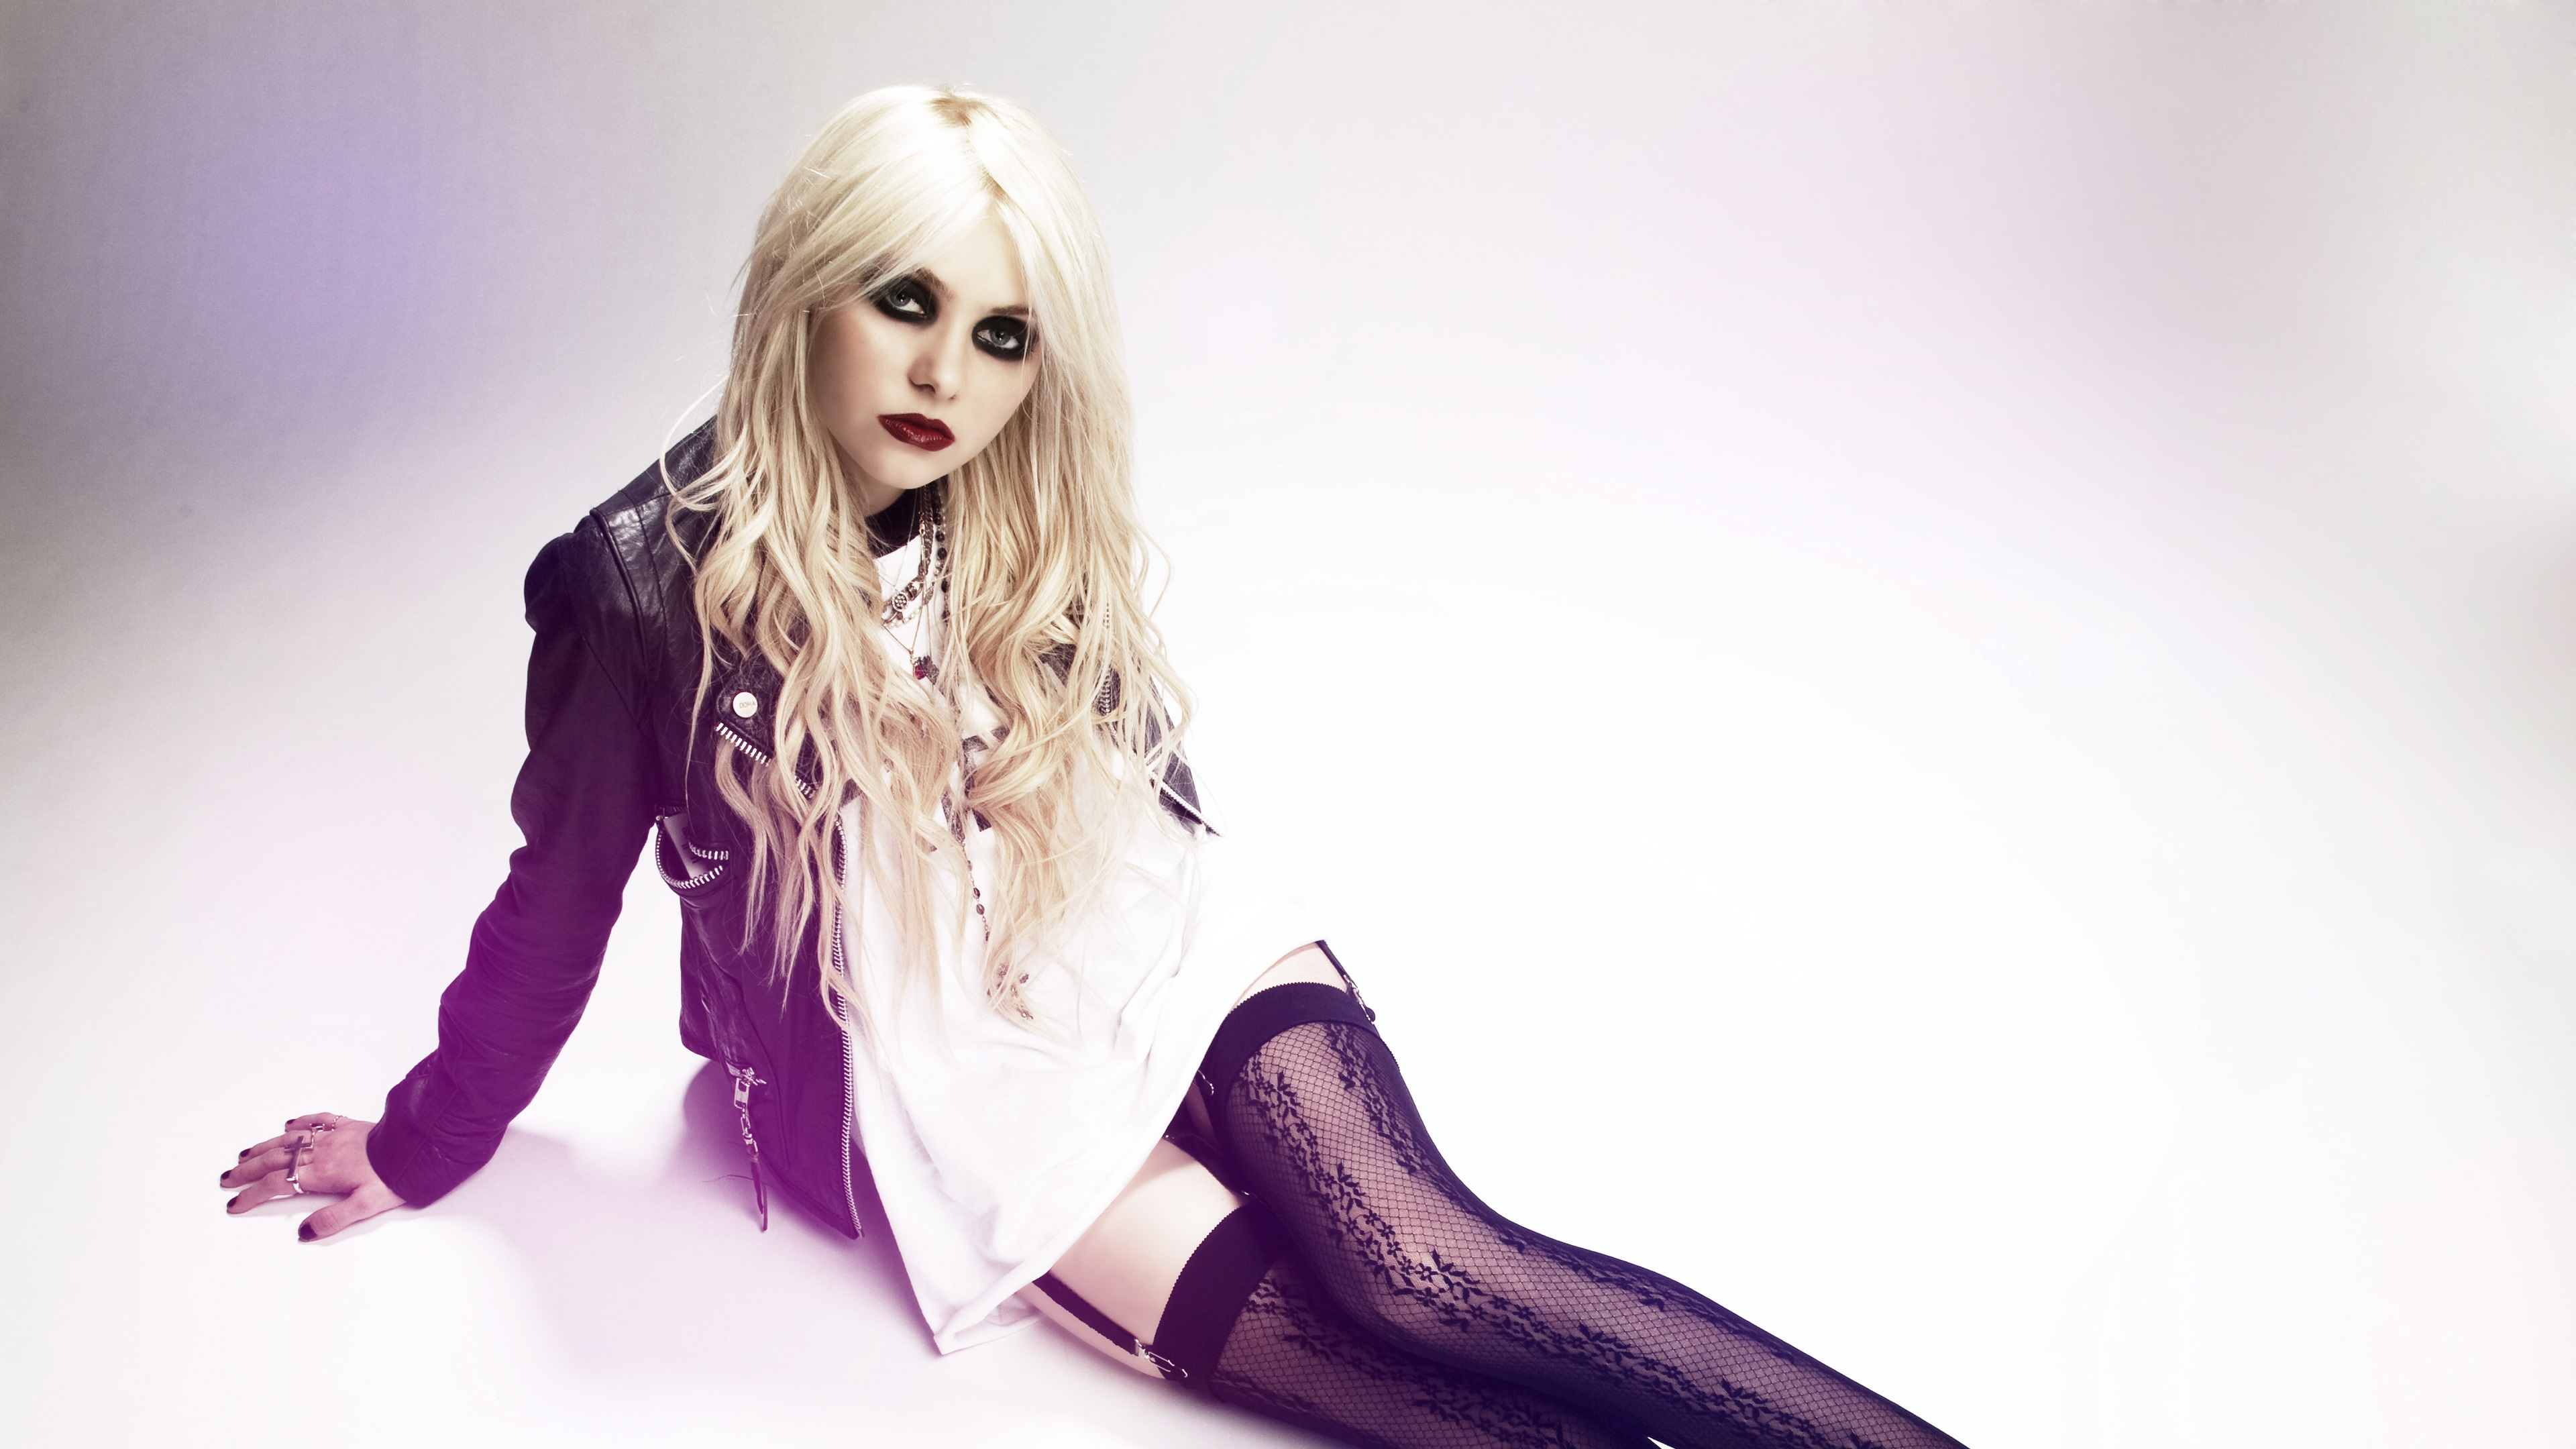 Best Iphone 4s Wallpapers Hd Pap 233 Is De Parede Taylor Momsen The Pretty Reckless